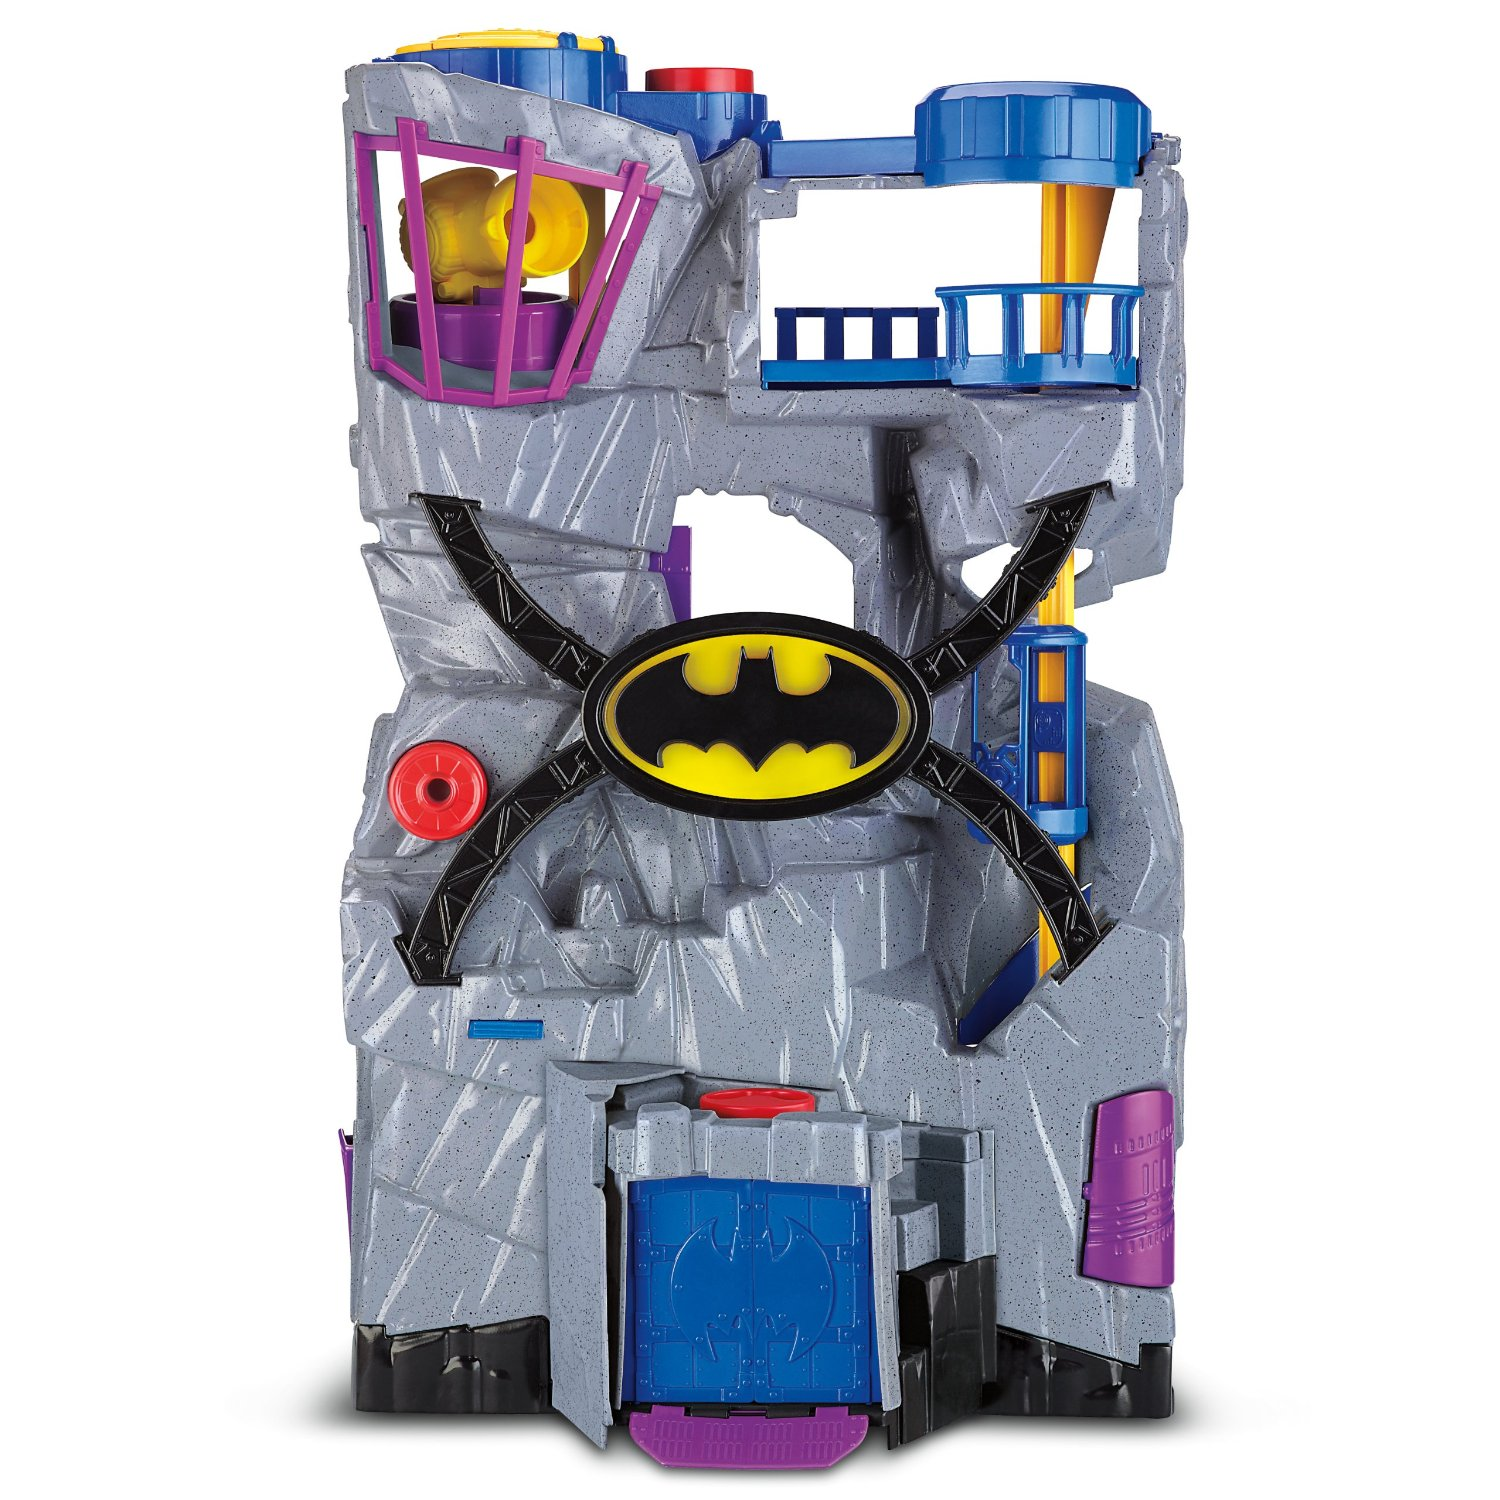 Fisher Price Batman Toys : Fisher price imaginext sets at over off batcave